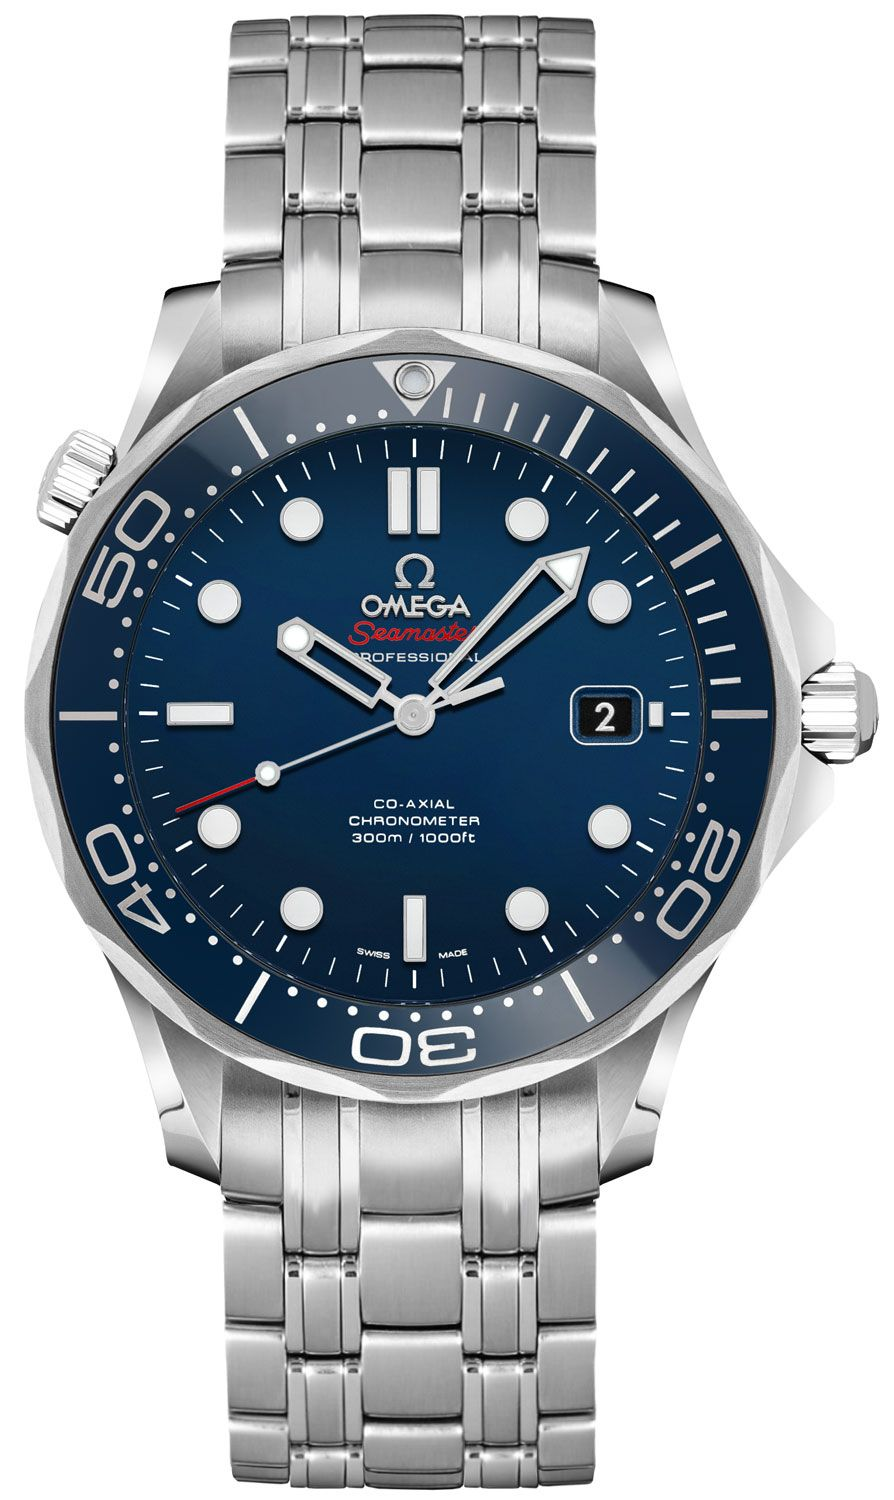 212.30.41.20.03.001 Omega Seamaster Men's Watches